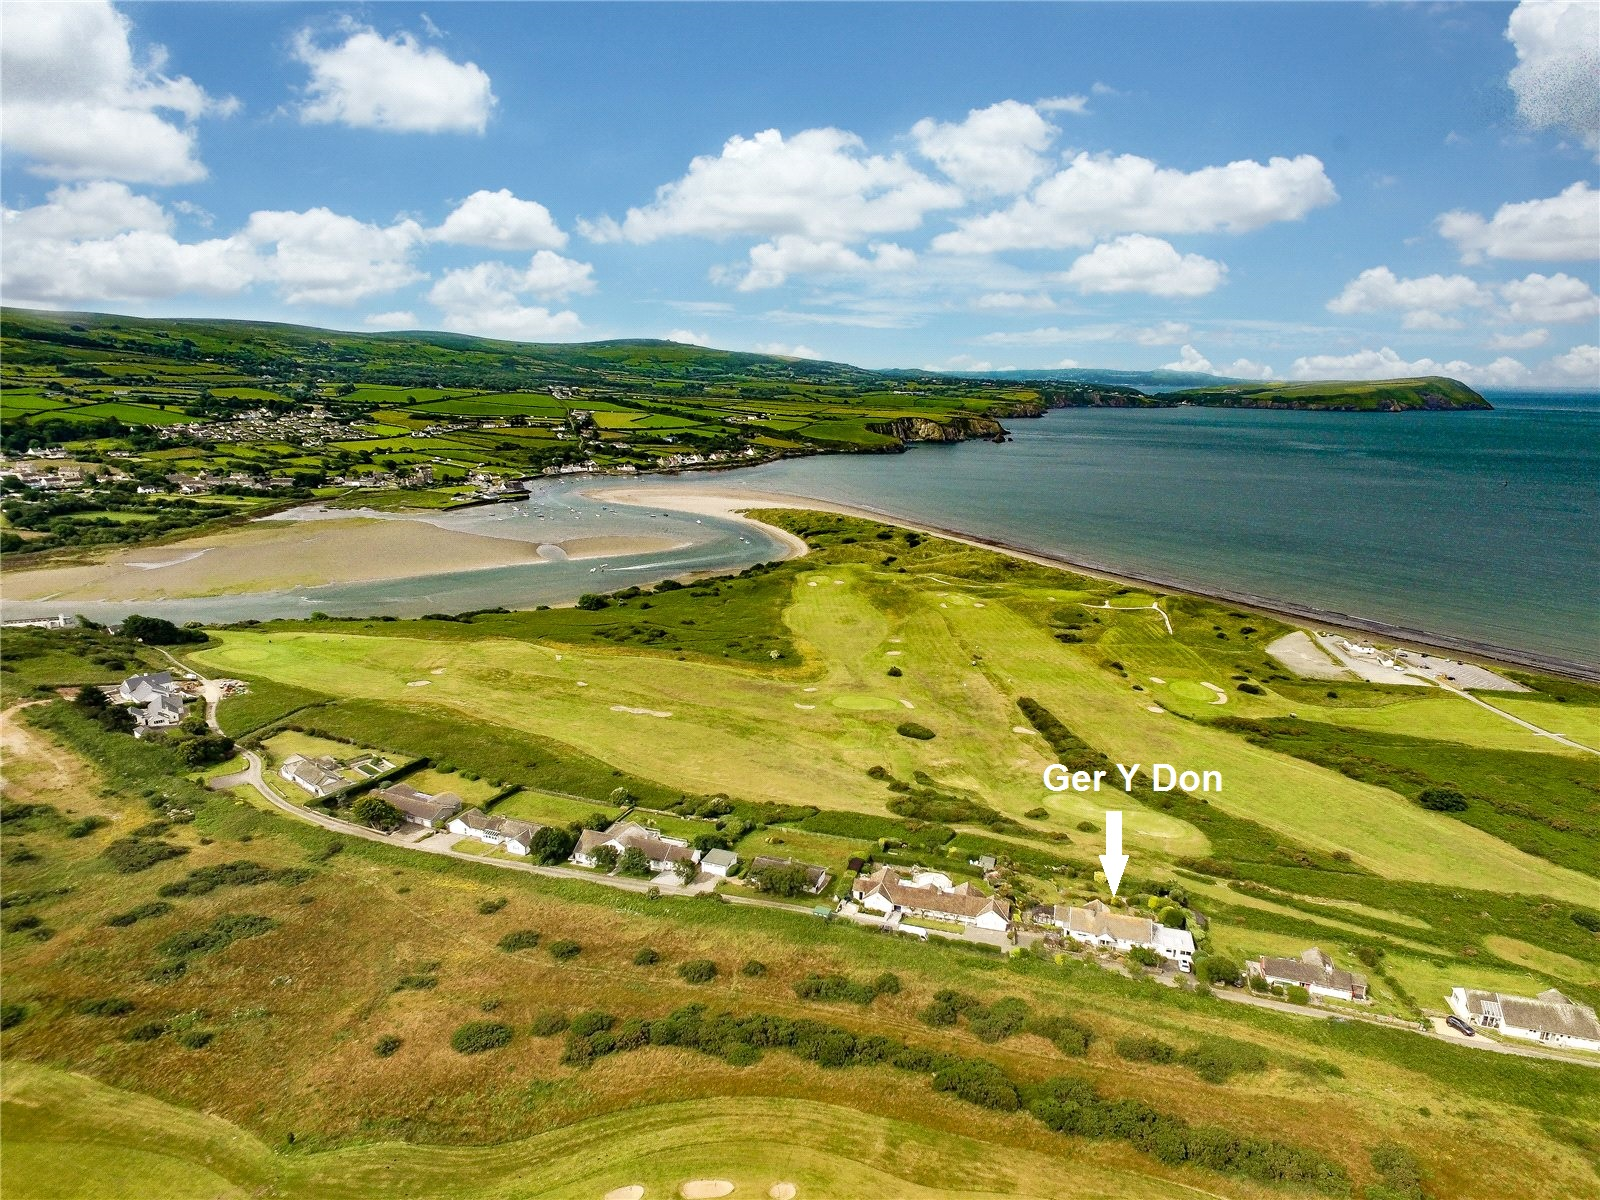 5 Bedrooms Detached Bungalow for sale in Ger Y Don, Golf Course Road, Newport, Pembrokeshire